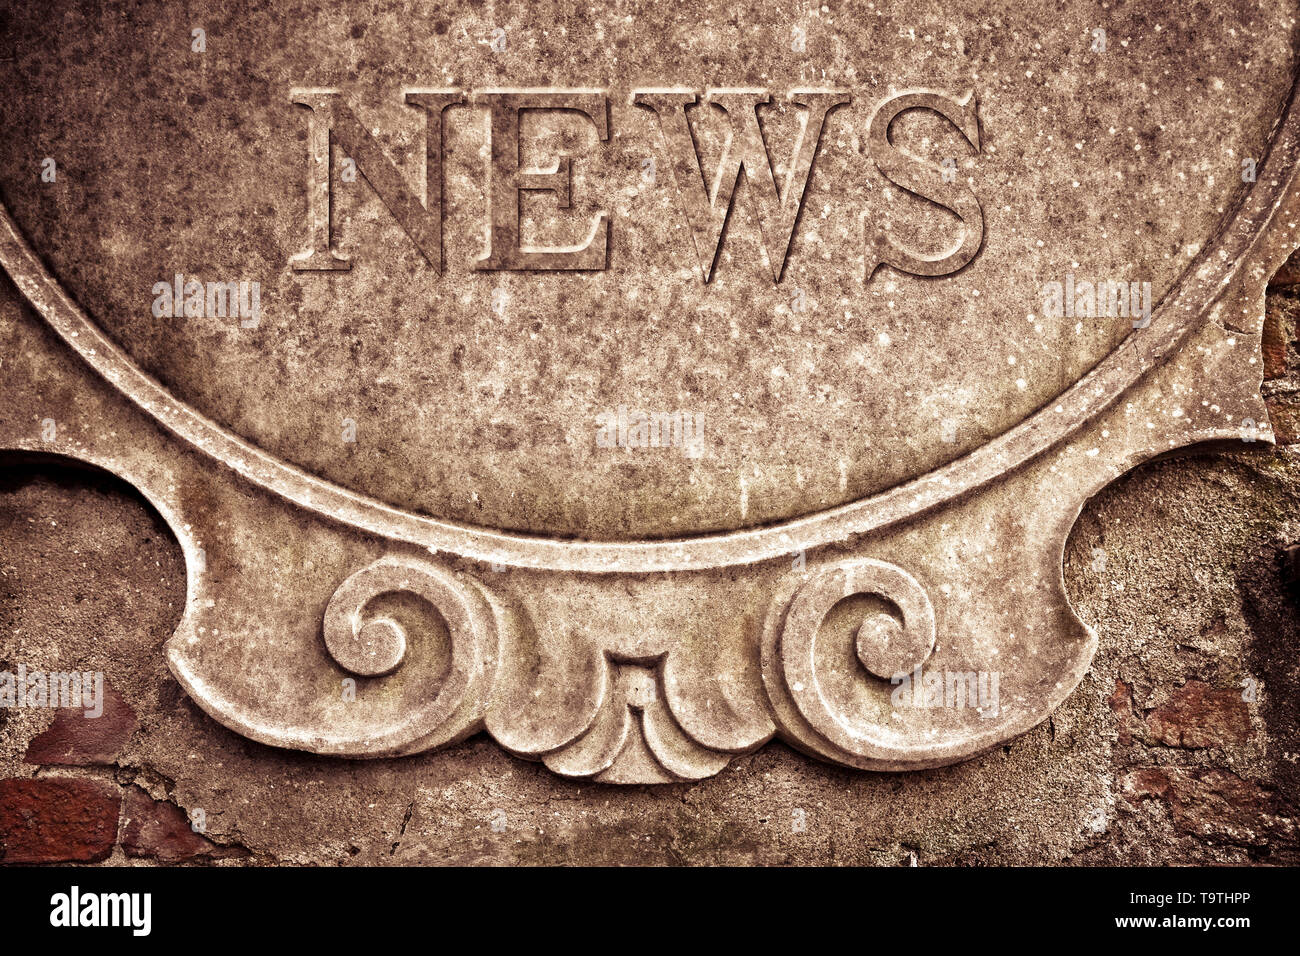 News written on stucco wall - concept image - Stock Image